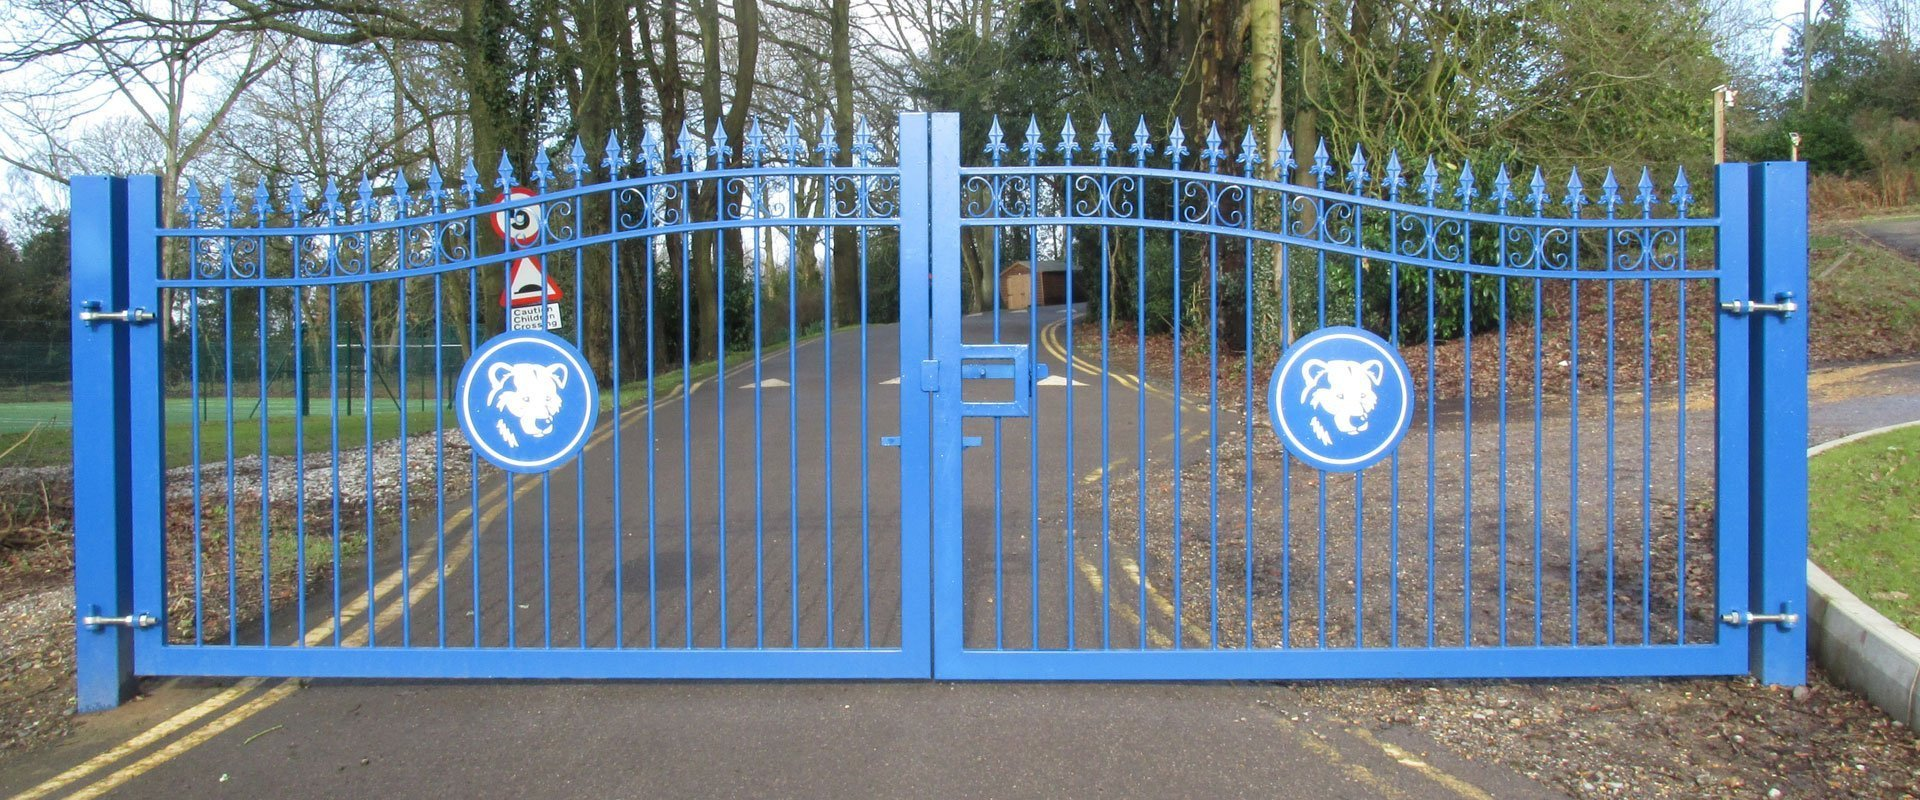 blue double metal gates infront of driveway